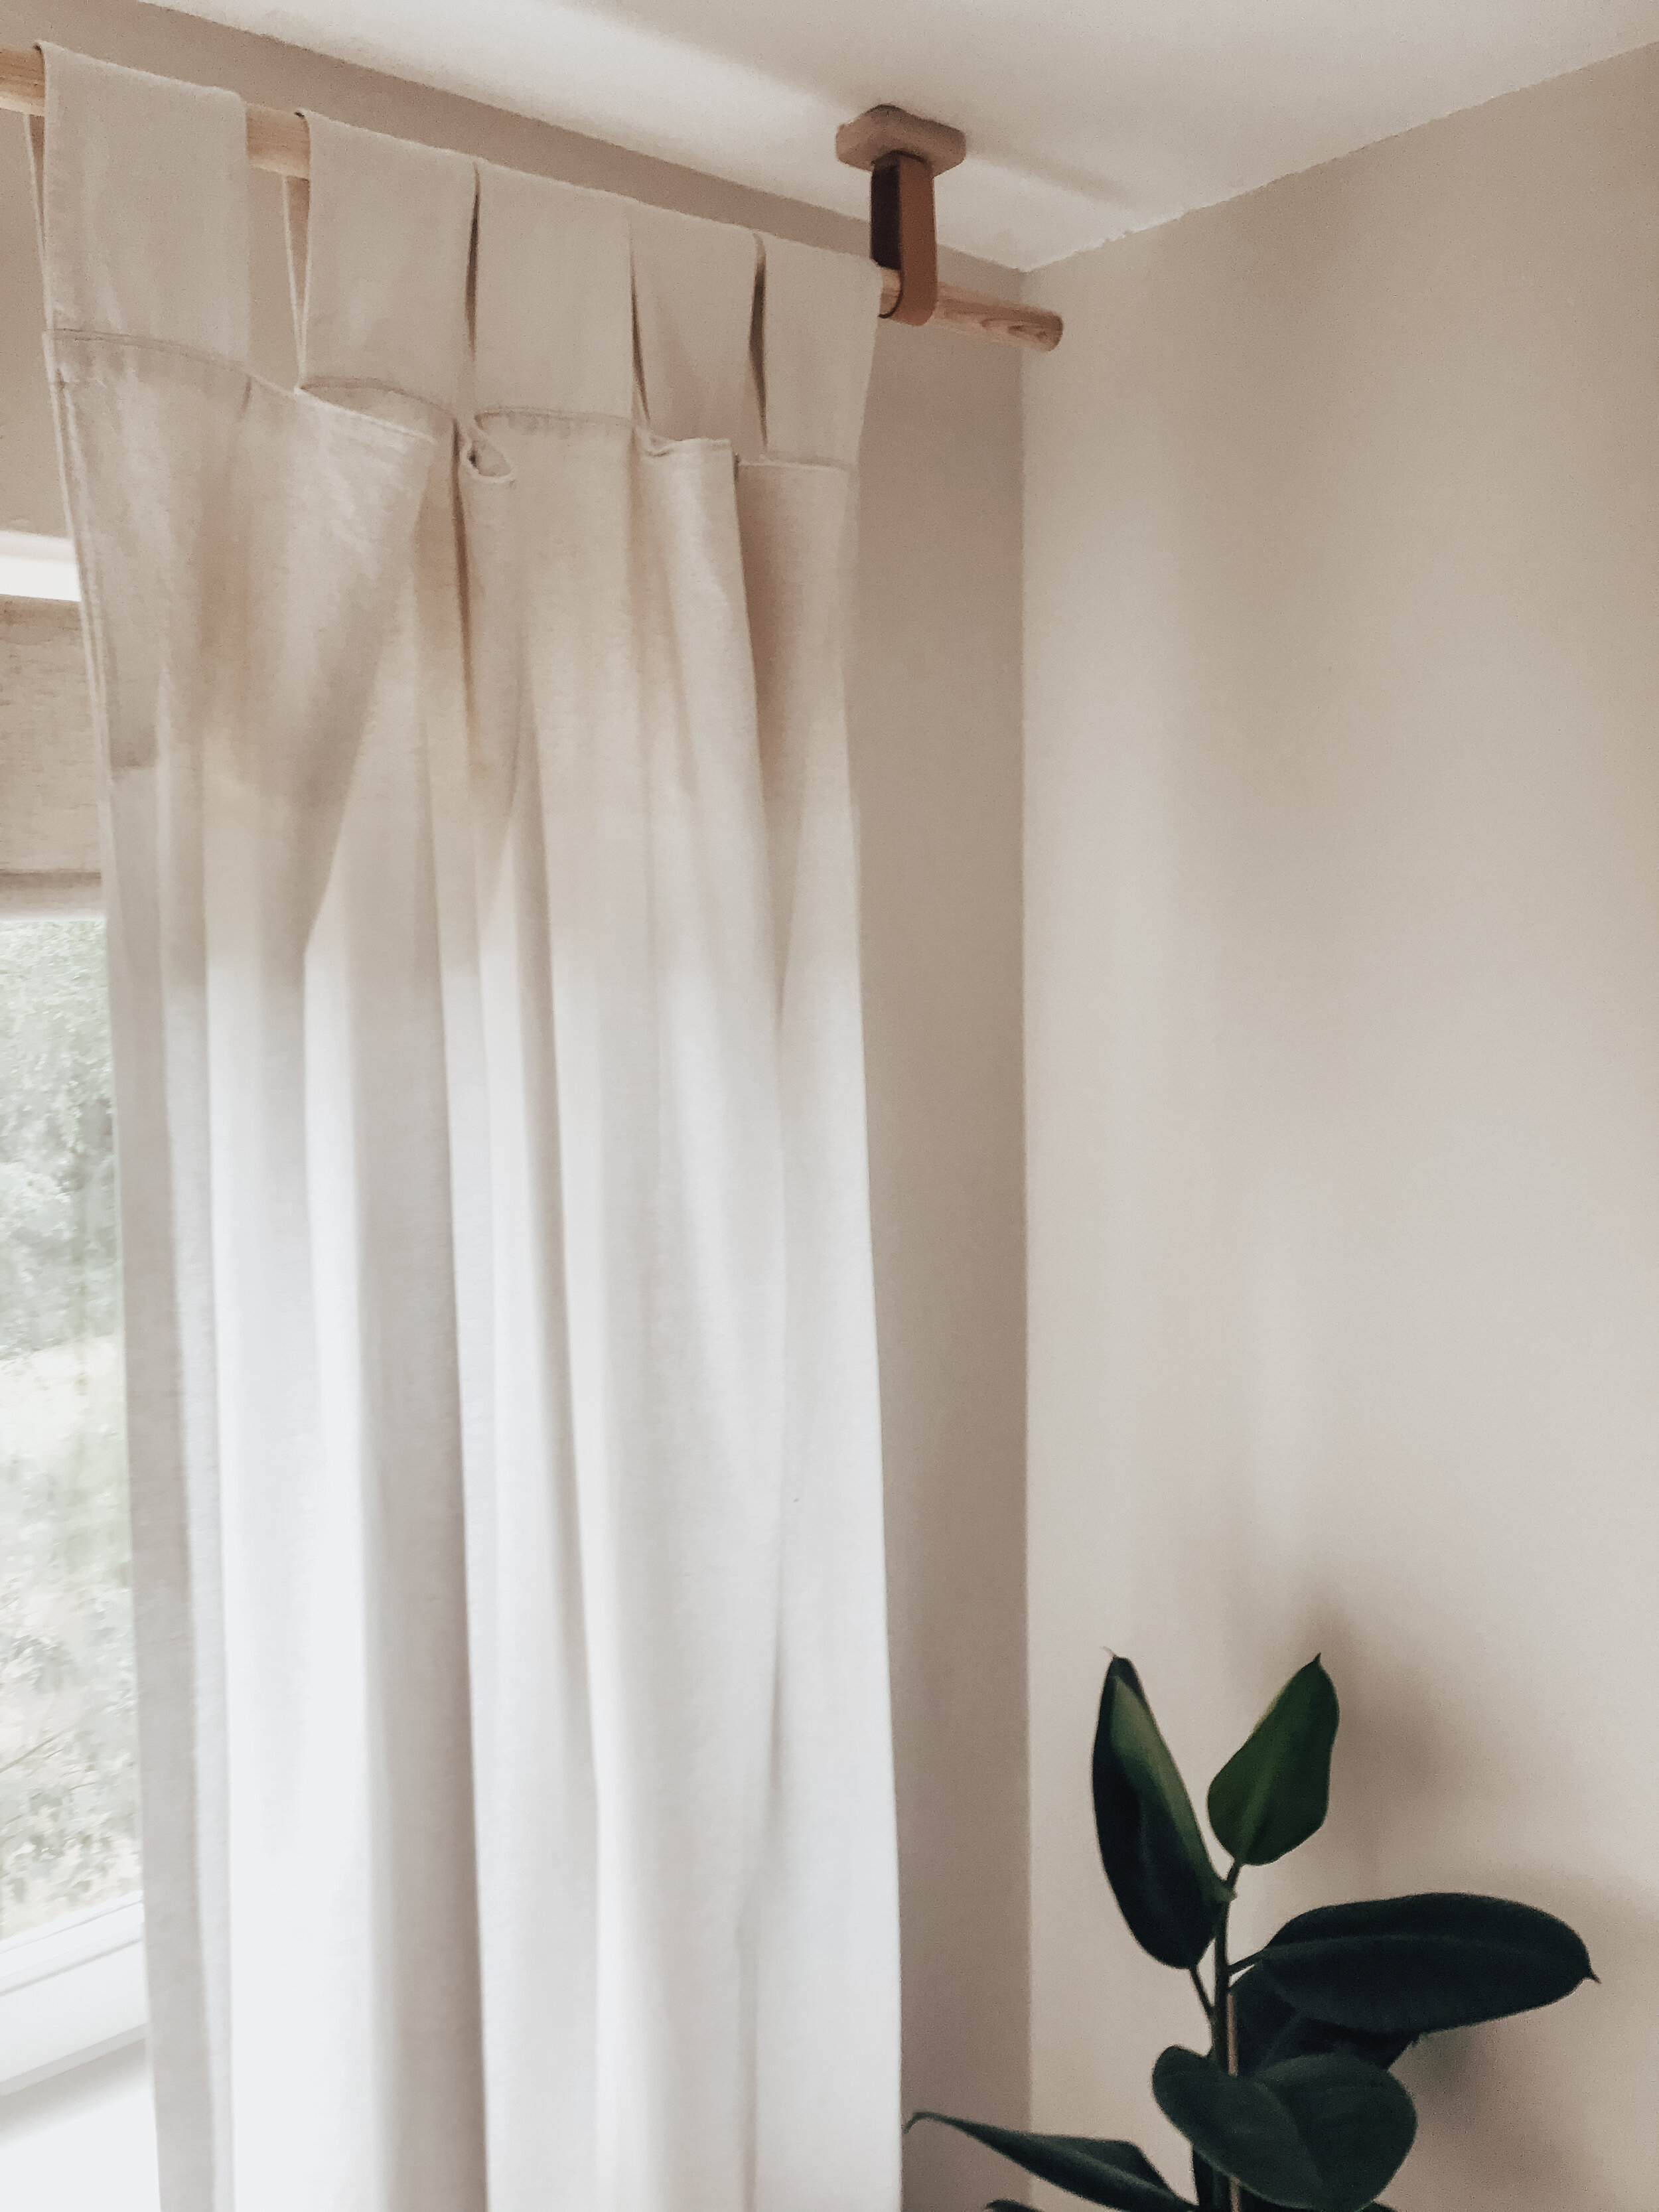 diy wooden curtain rods pole with